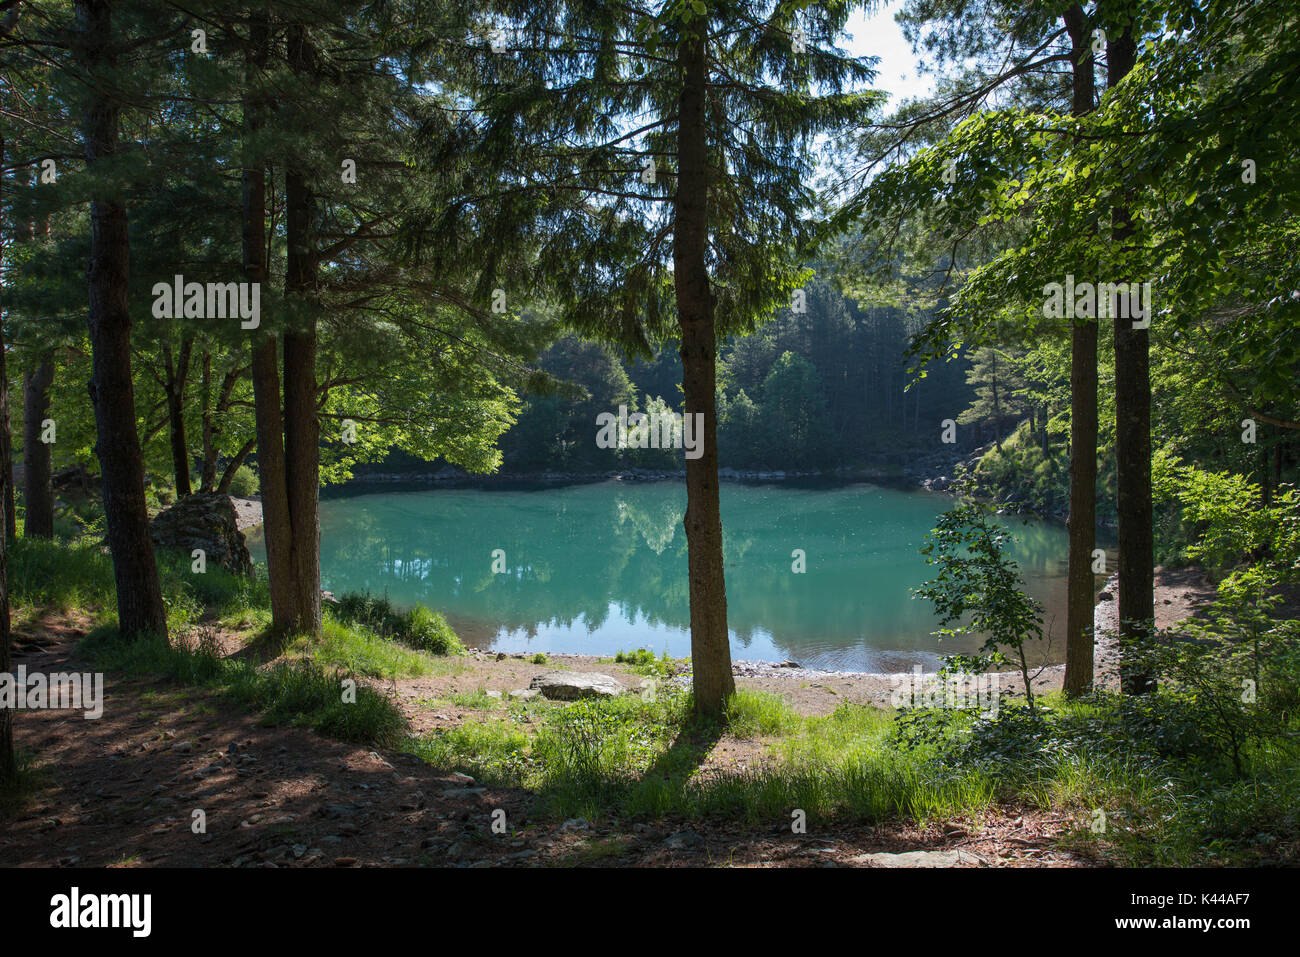 Aveto Valley Regional Park, Lame lake, Liguria, Italy. The glacial Lame lake with tree's reflection - Stock Image